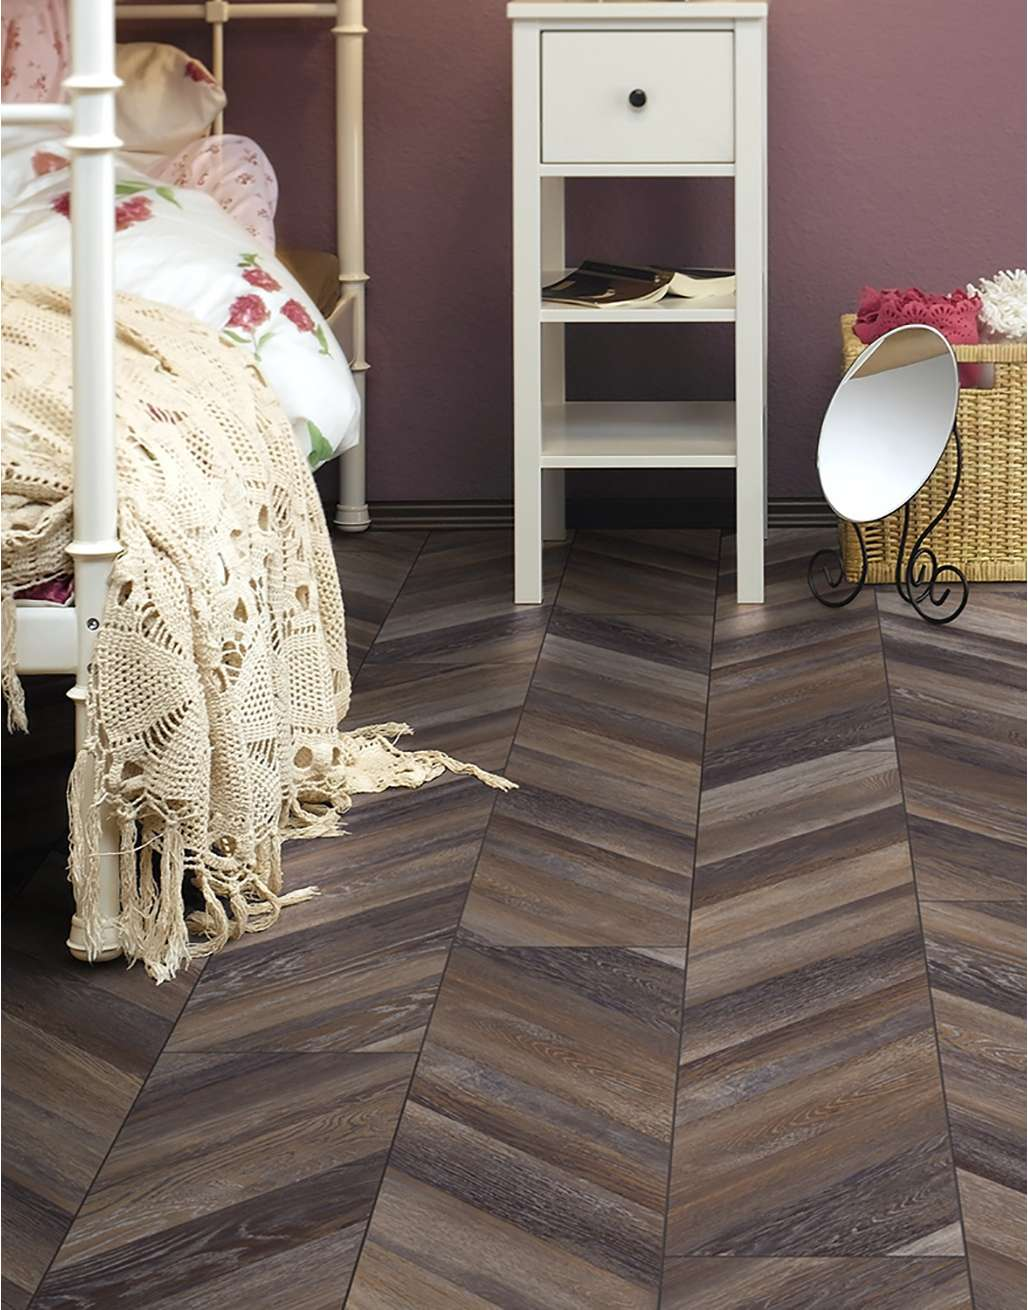 Inspiration:  Using herringbone In Your Home - Image Via directwoodflooring.co.uk